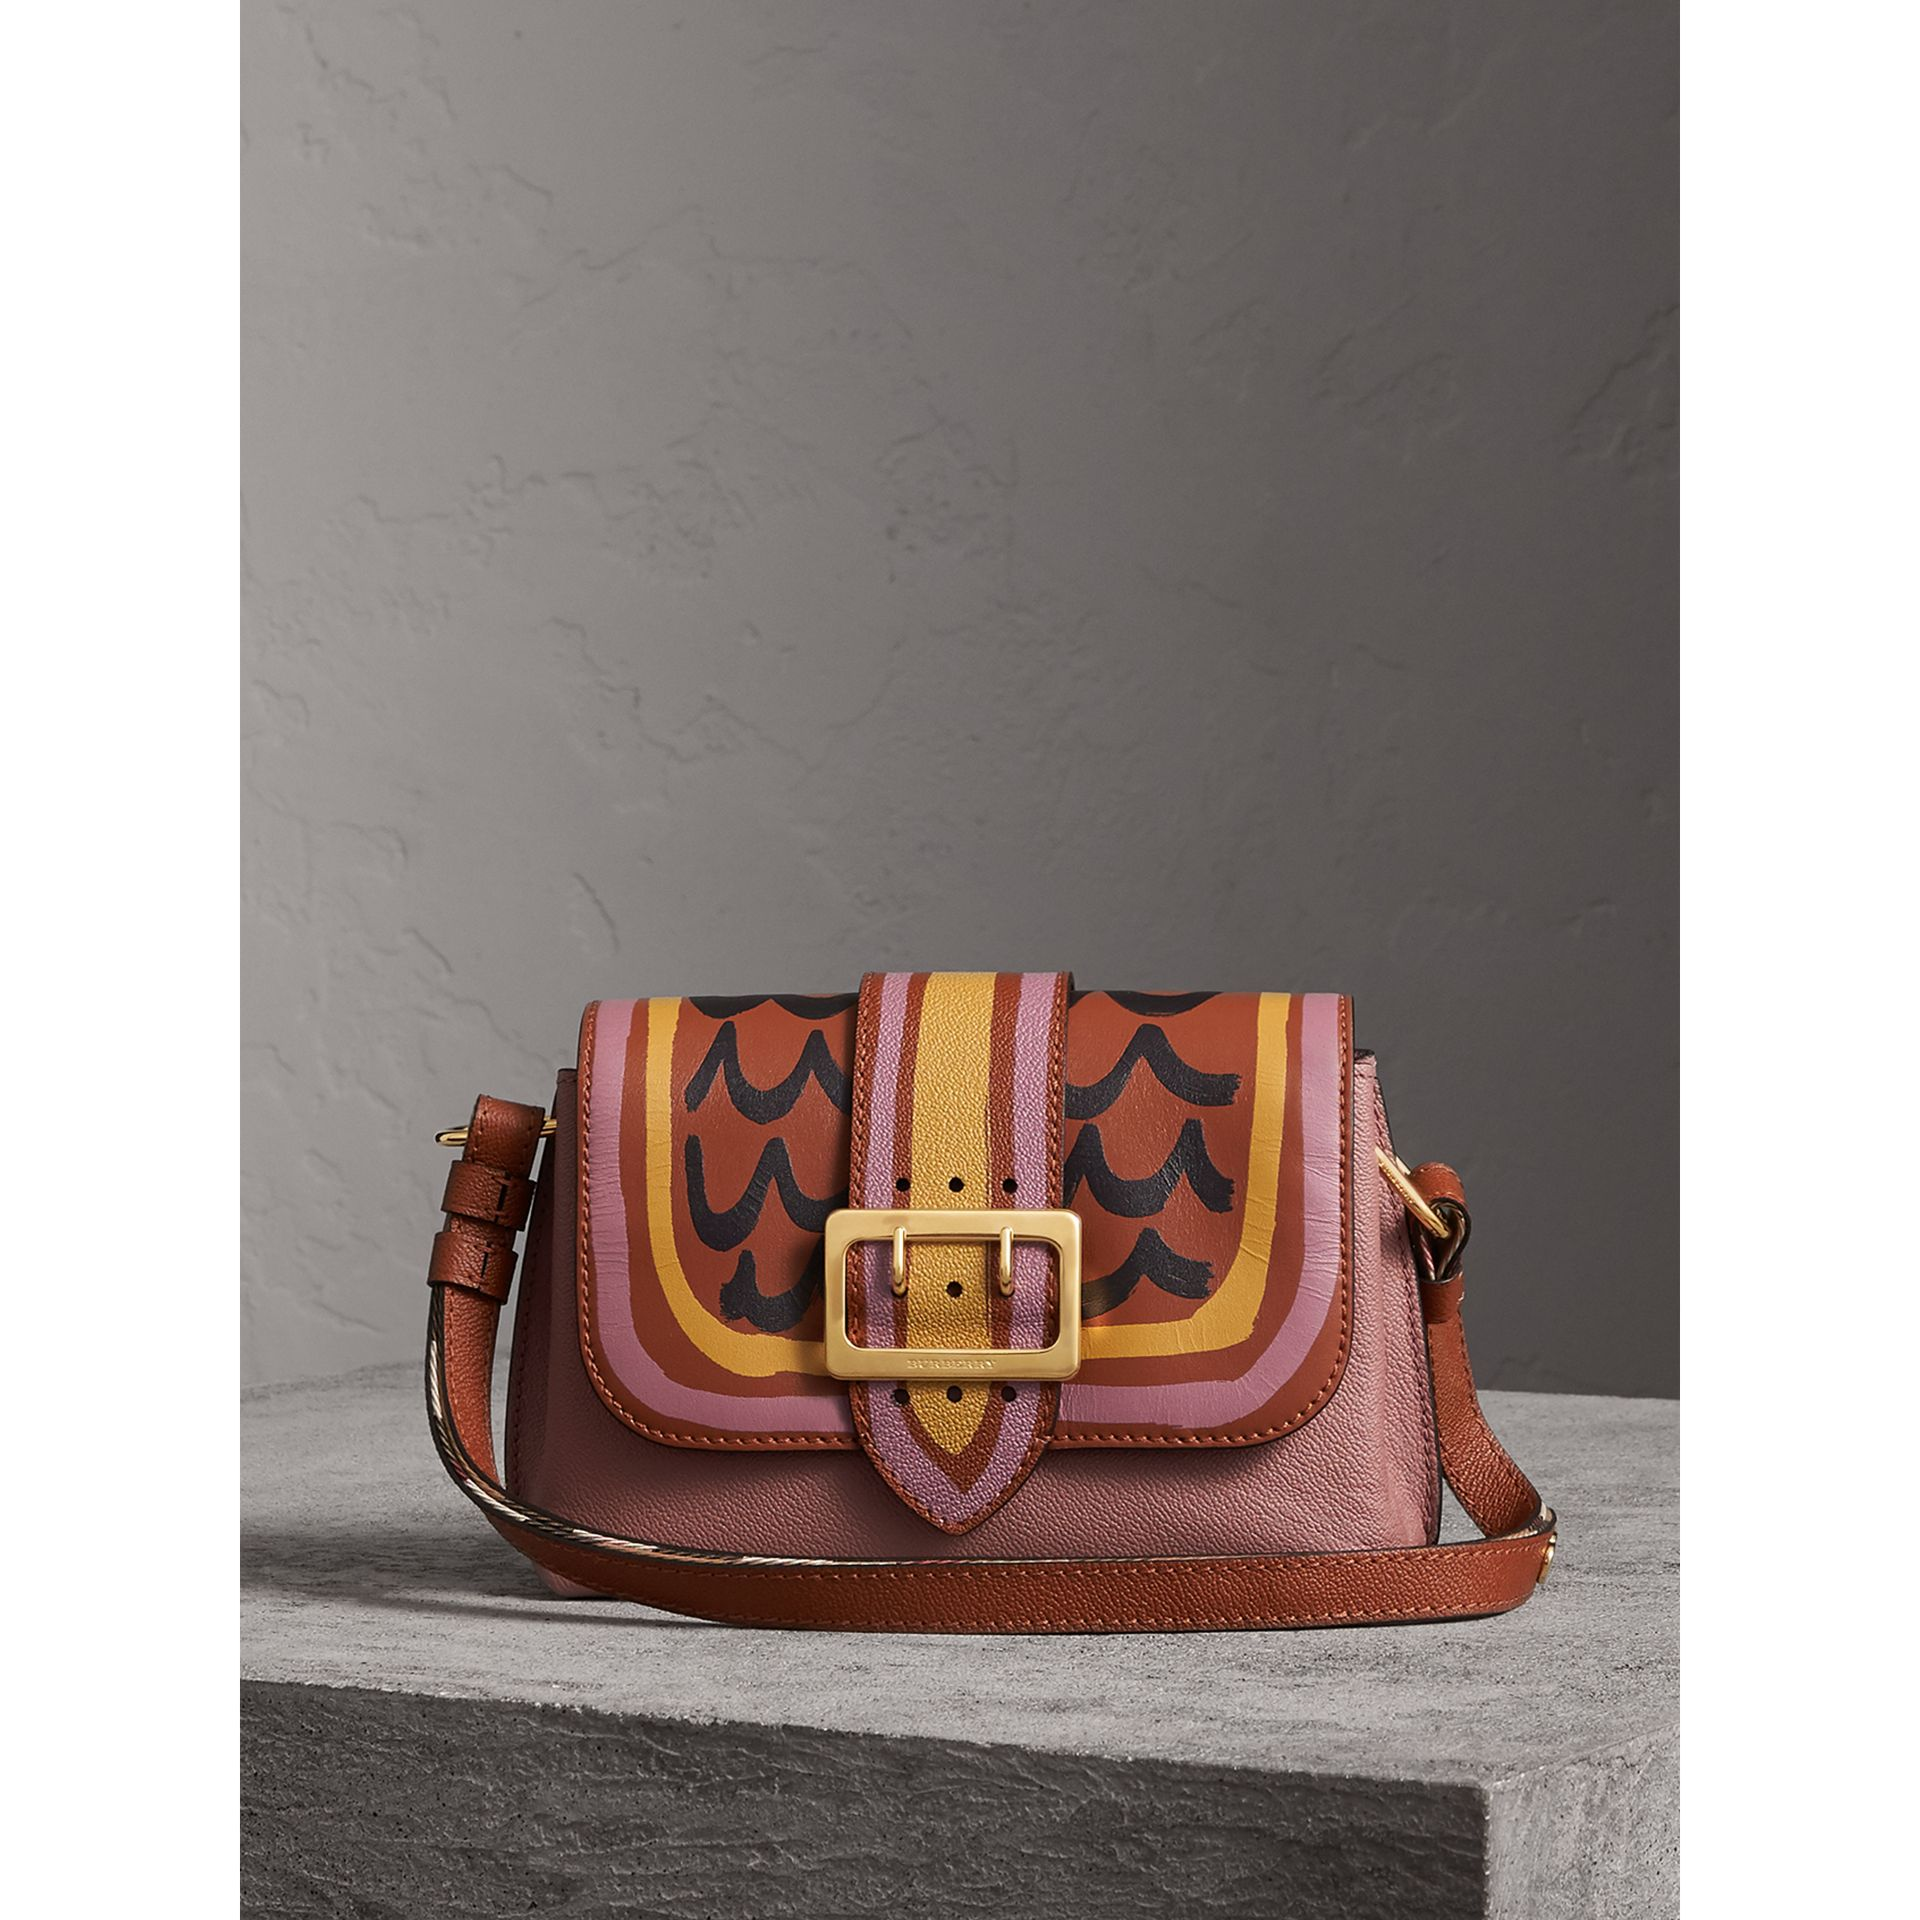 The Buckle Crossbody Bag in Trompe L'oeil Leather in Dusty Pink/bright Toffee - Women | Burberry Canada - gallery image 1